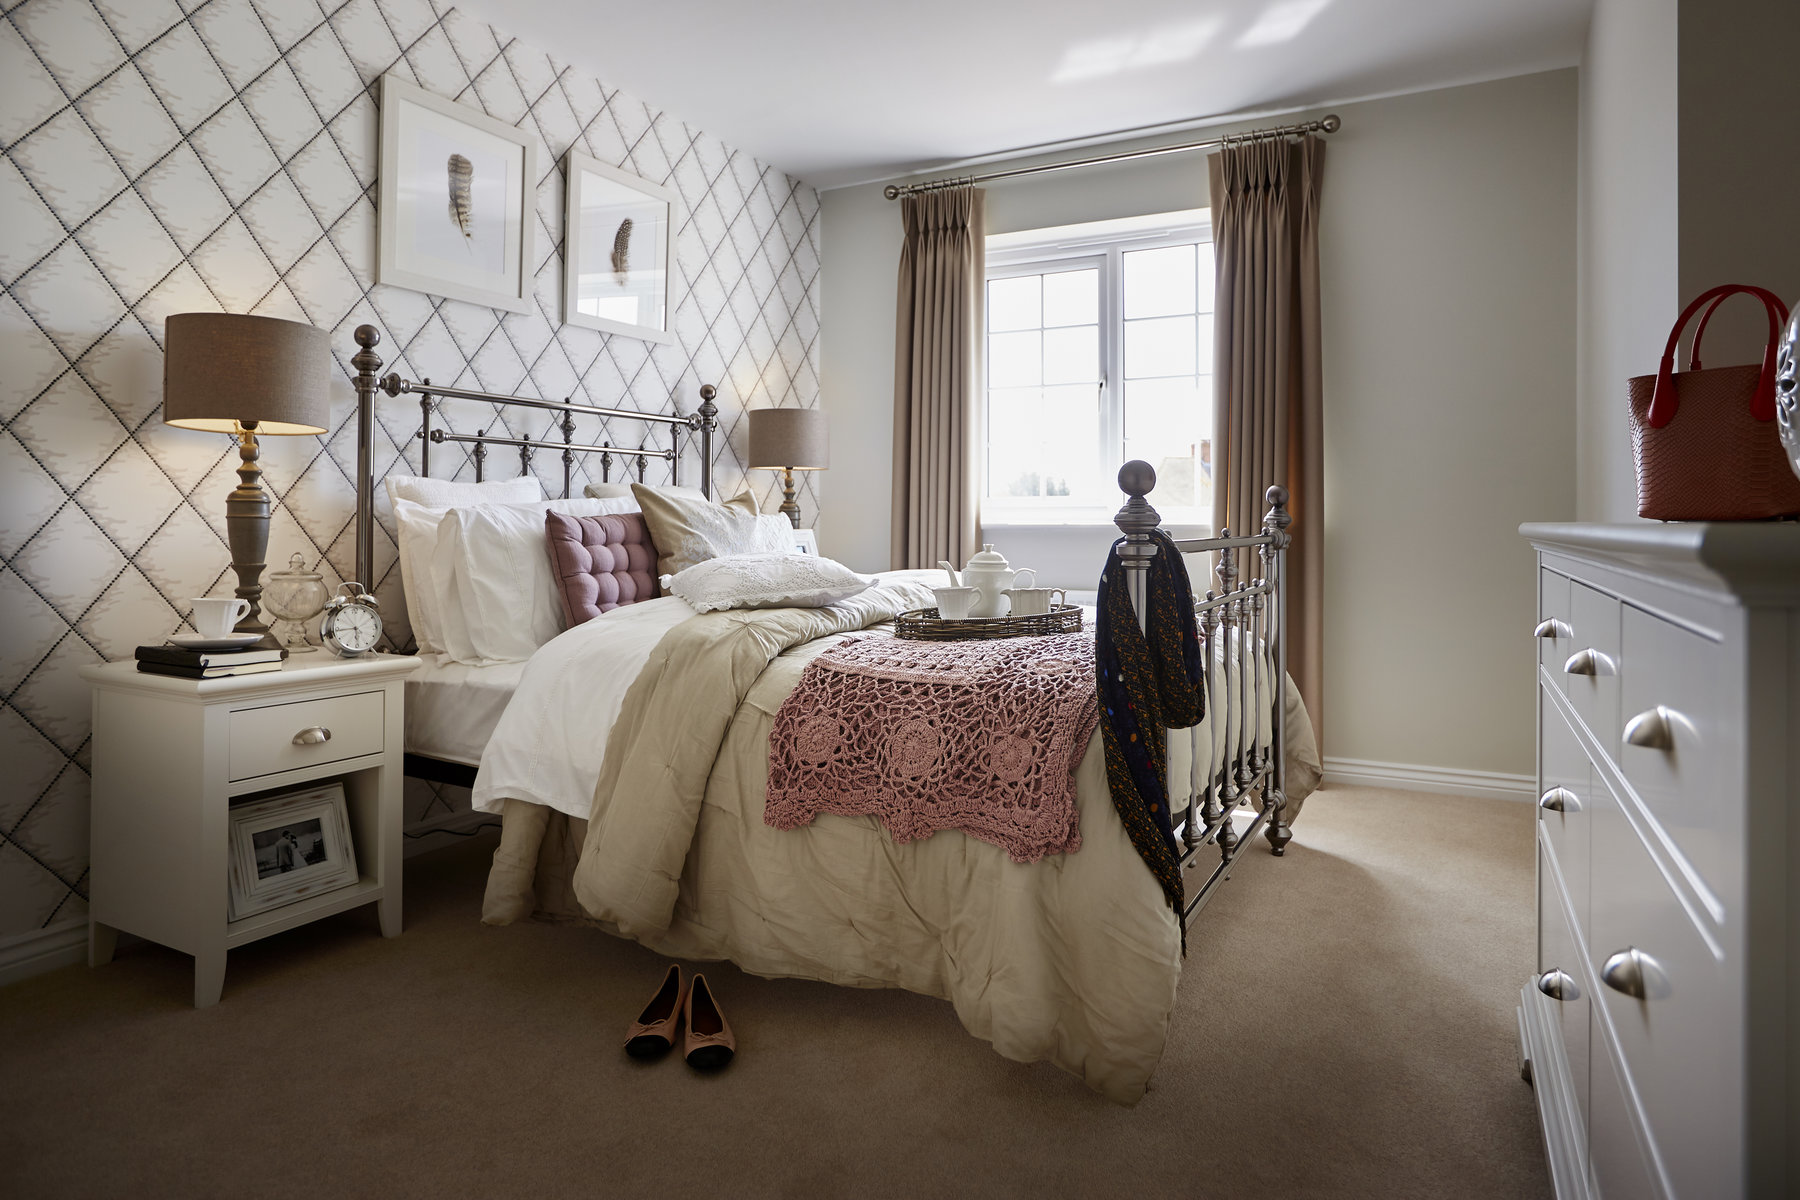 rsz_tw_mids_burlington_fields_shifnal_pa48_shelford_master_bedroom